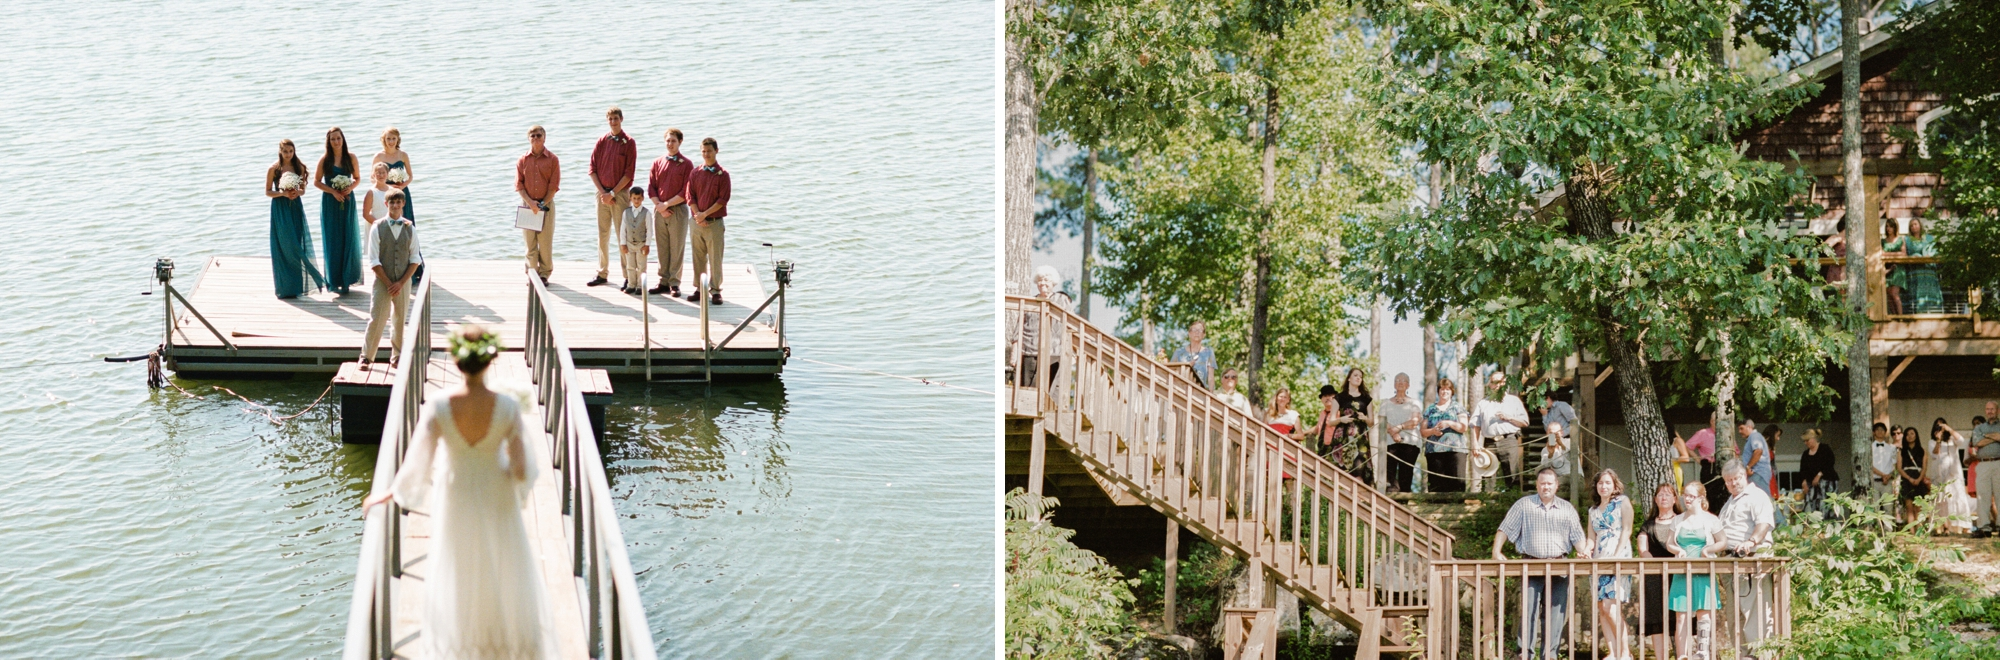 smith lake wedding_0049